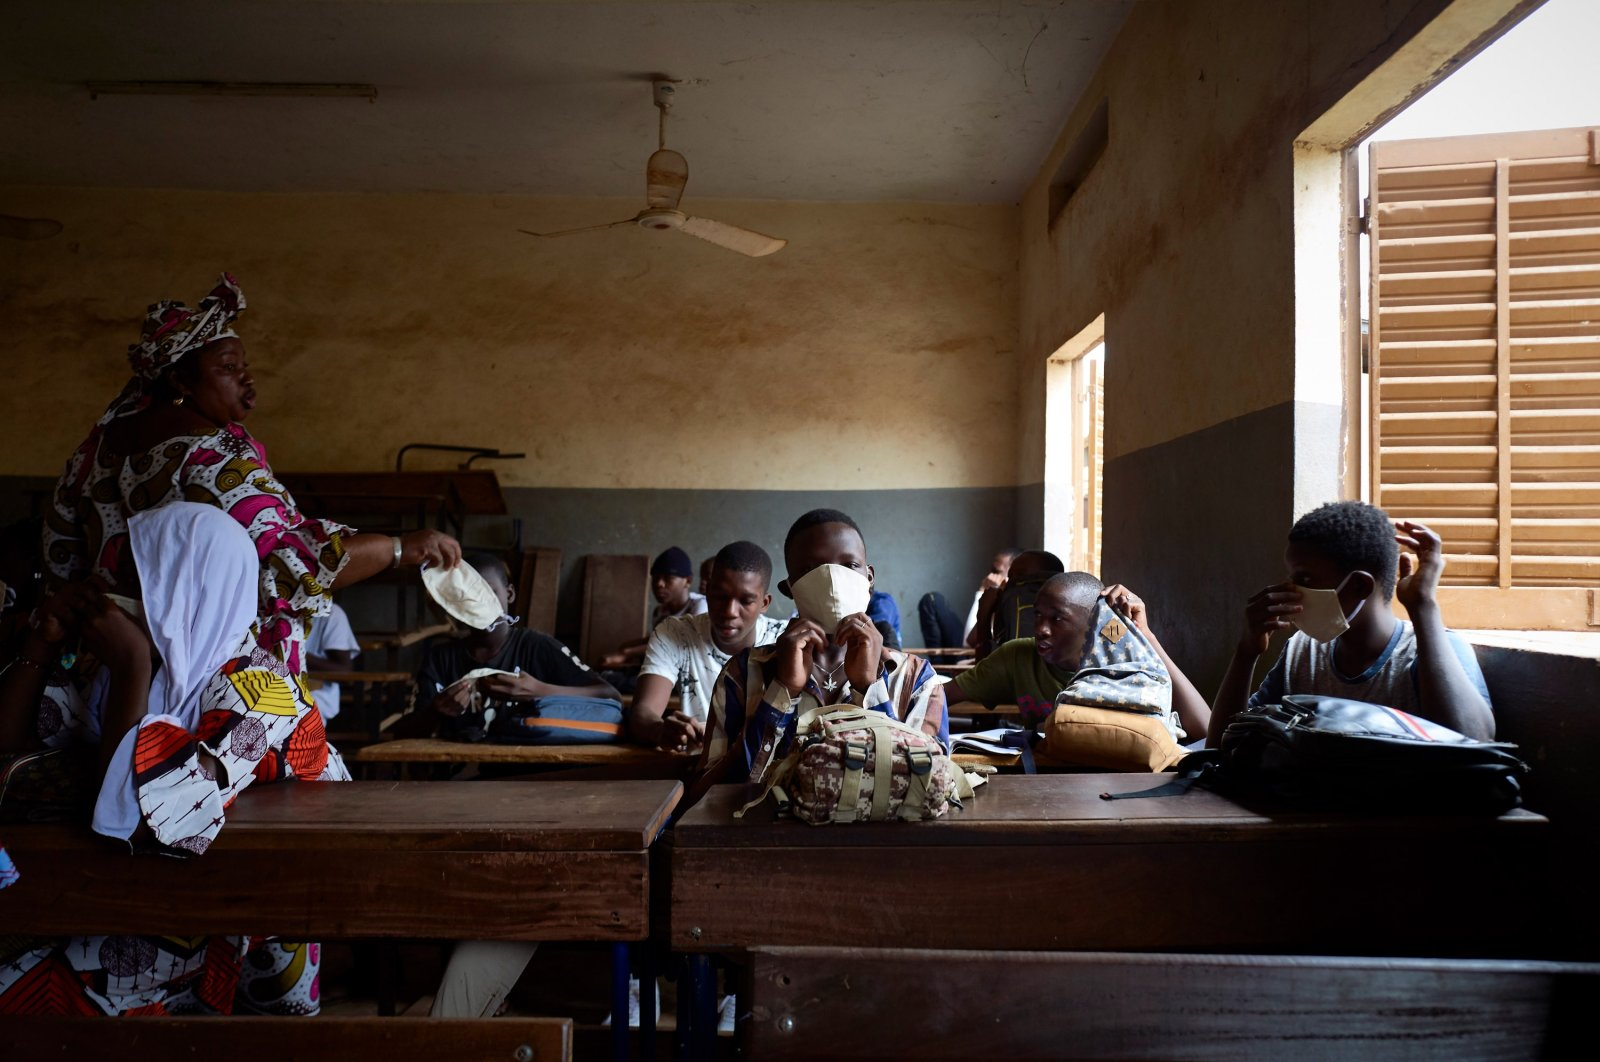 Malian students attend a lesson as the government decided to reopen the schools after two months of closure due to the spread of COVID-19 coronavirus, in Mali's capital Bamako, June 2, 2020. (AFP Photo)